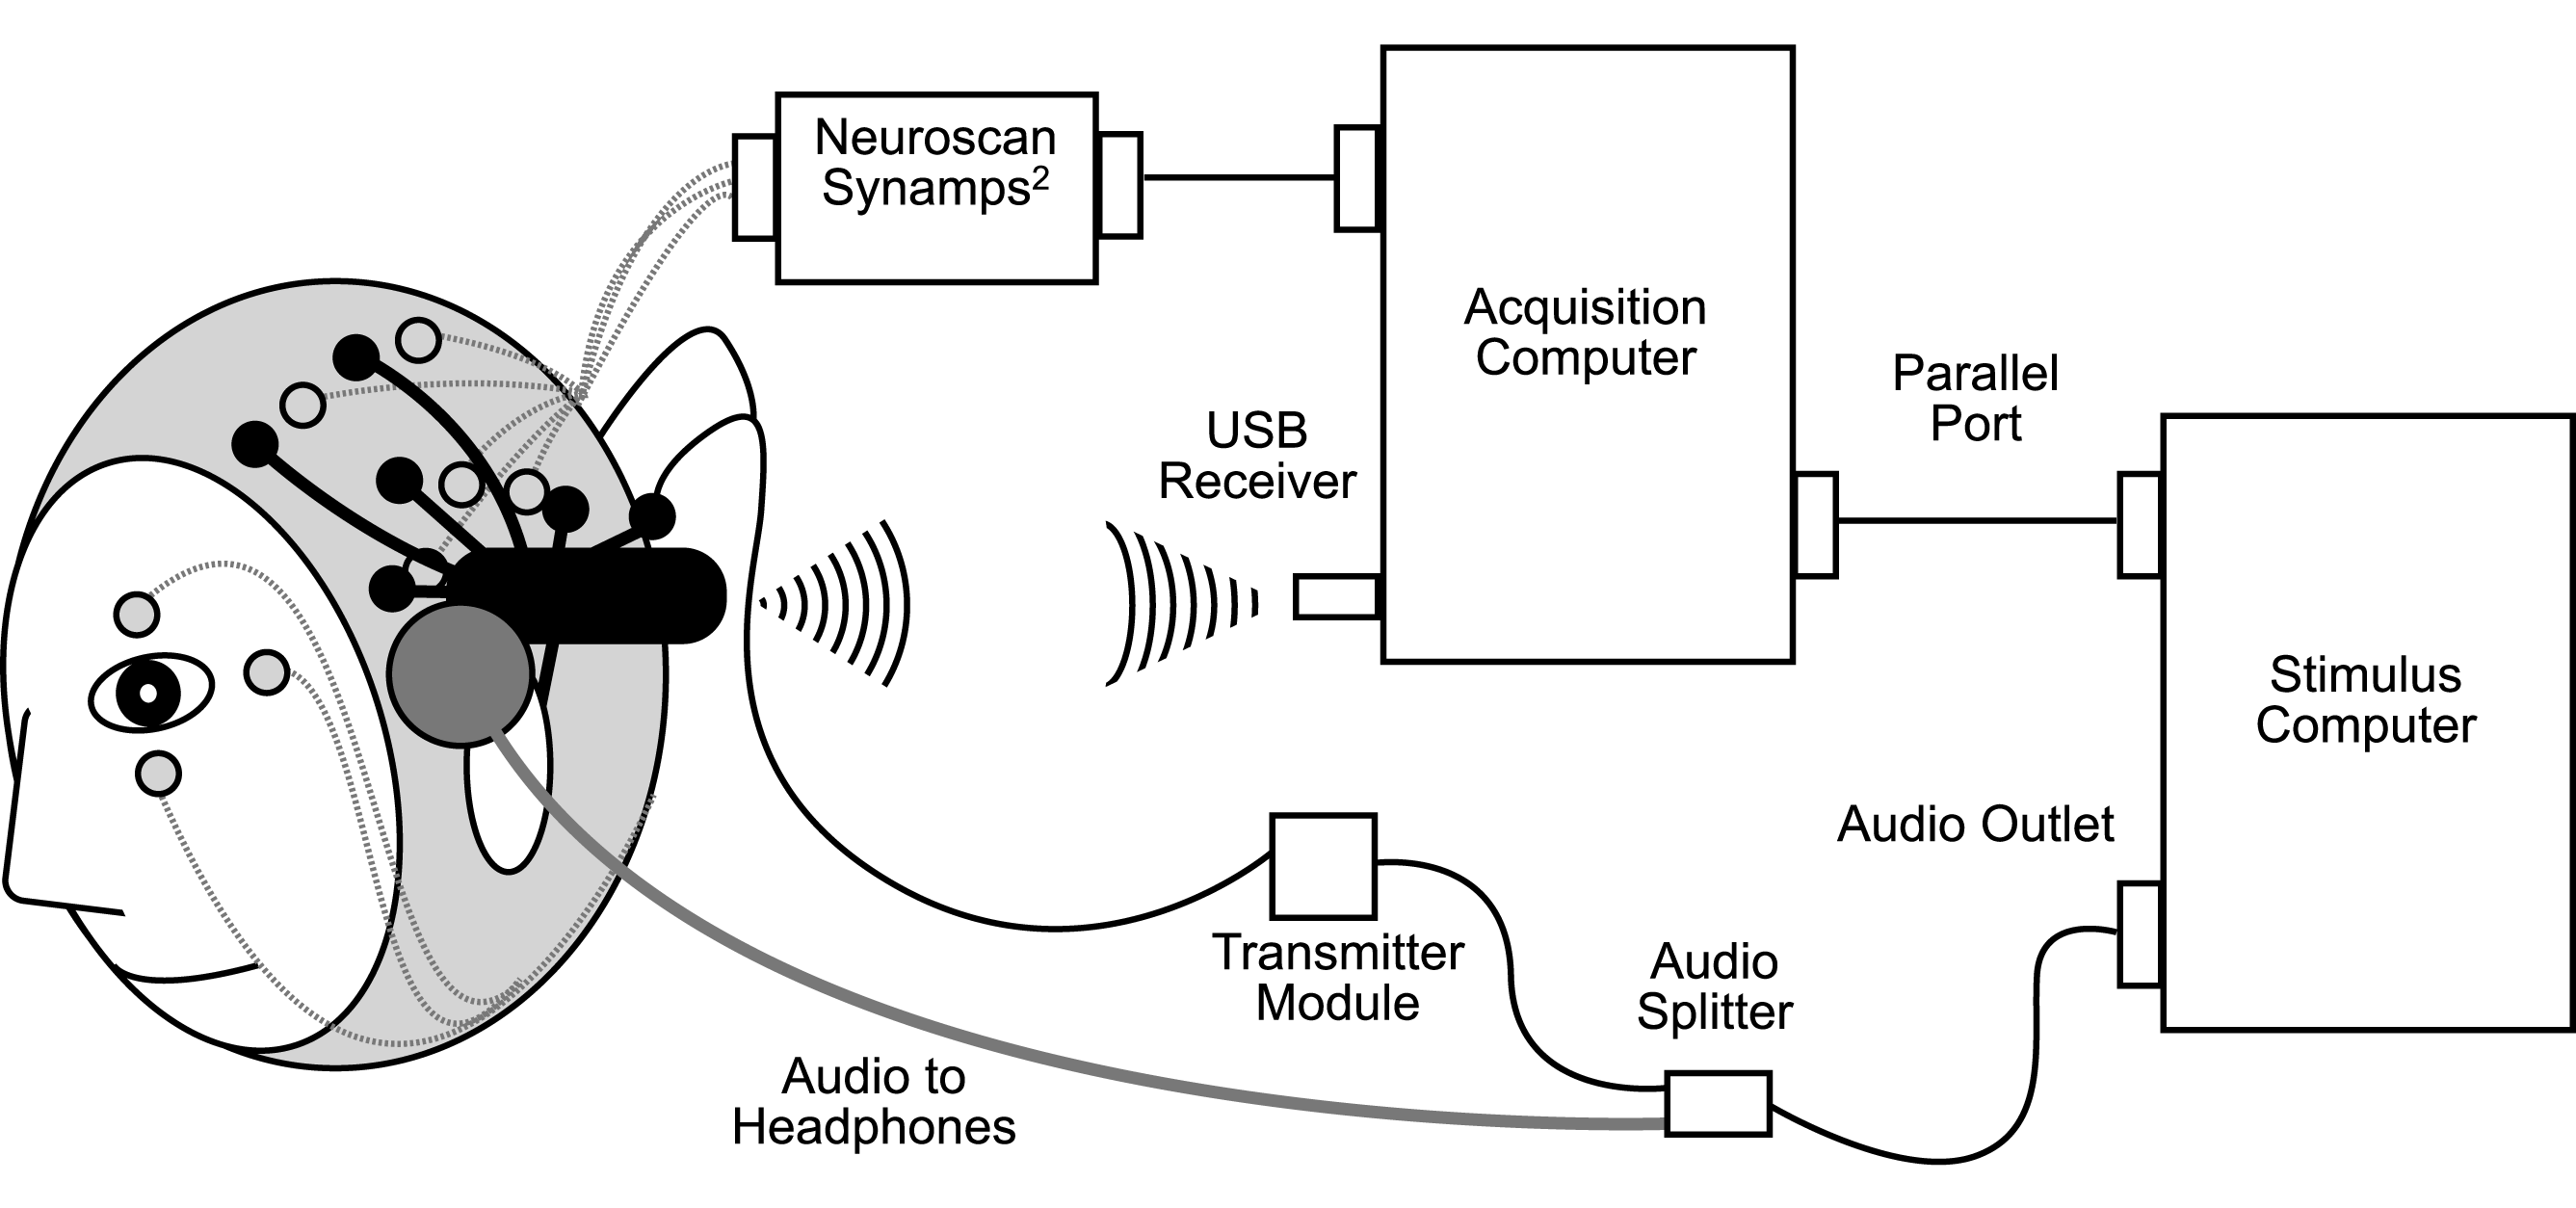 schematic diagram of simultaneous neuroscan in grey and epoc in